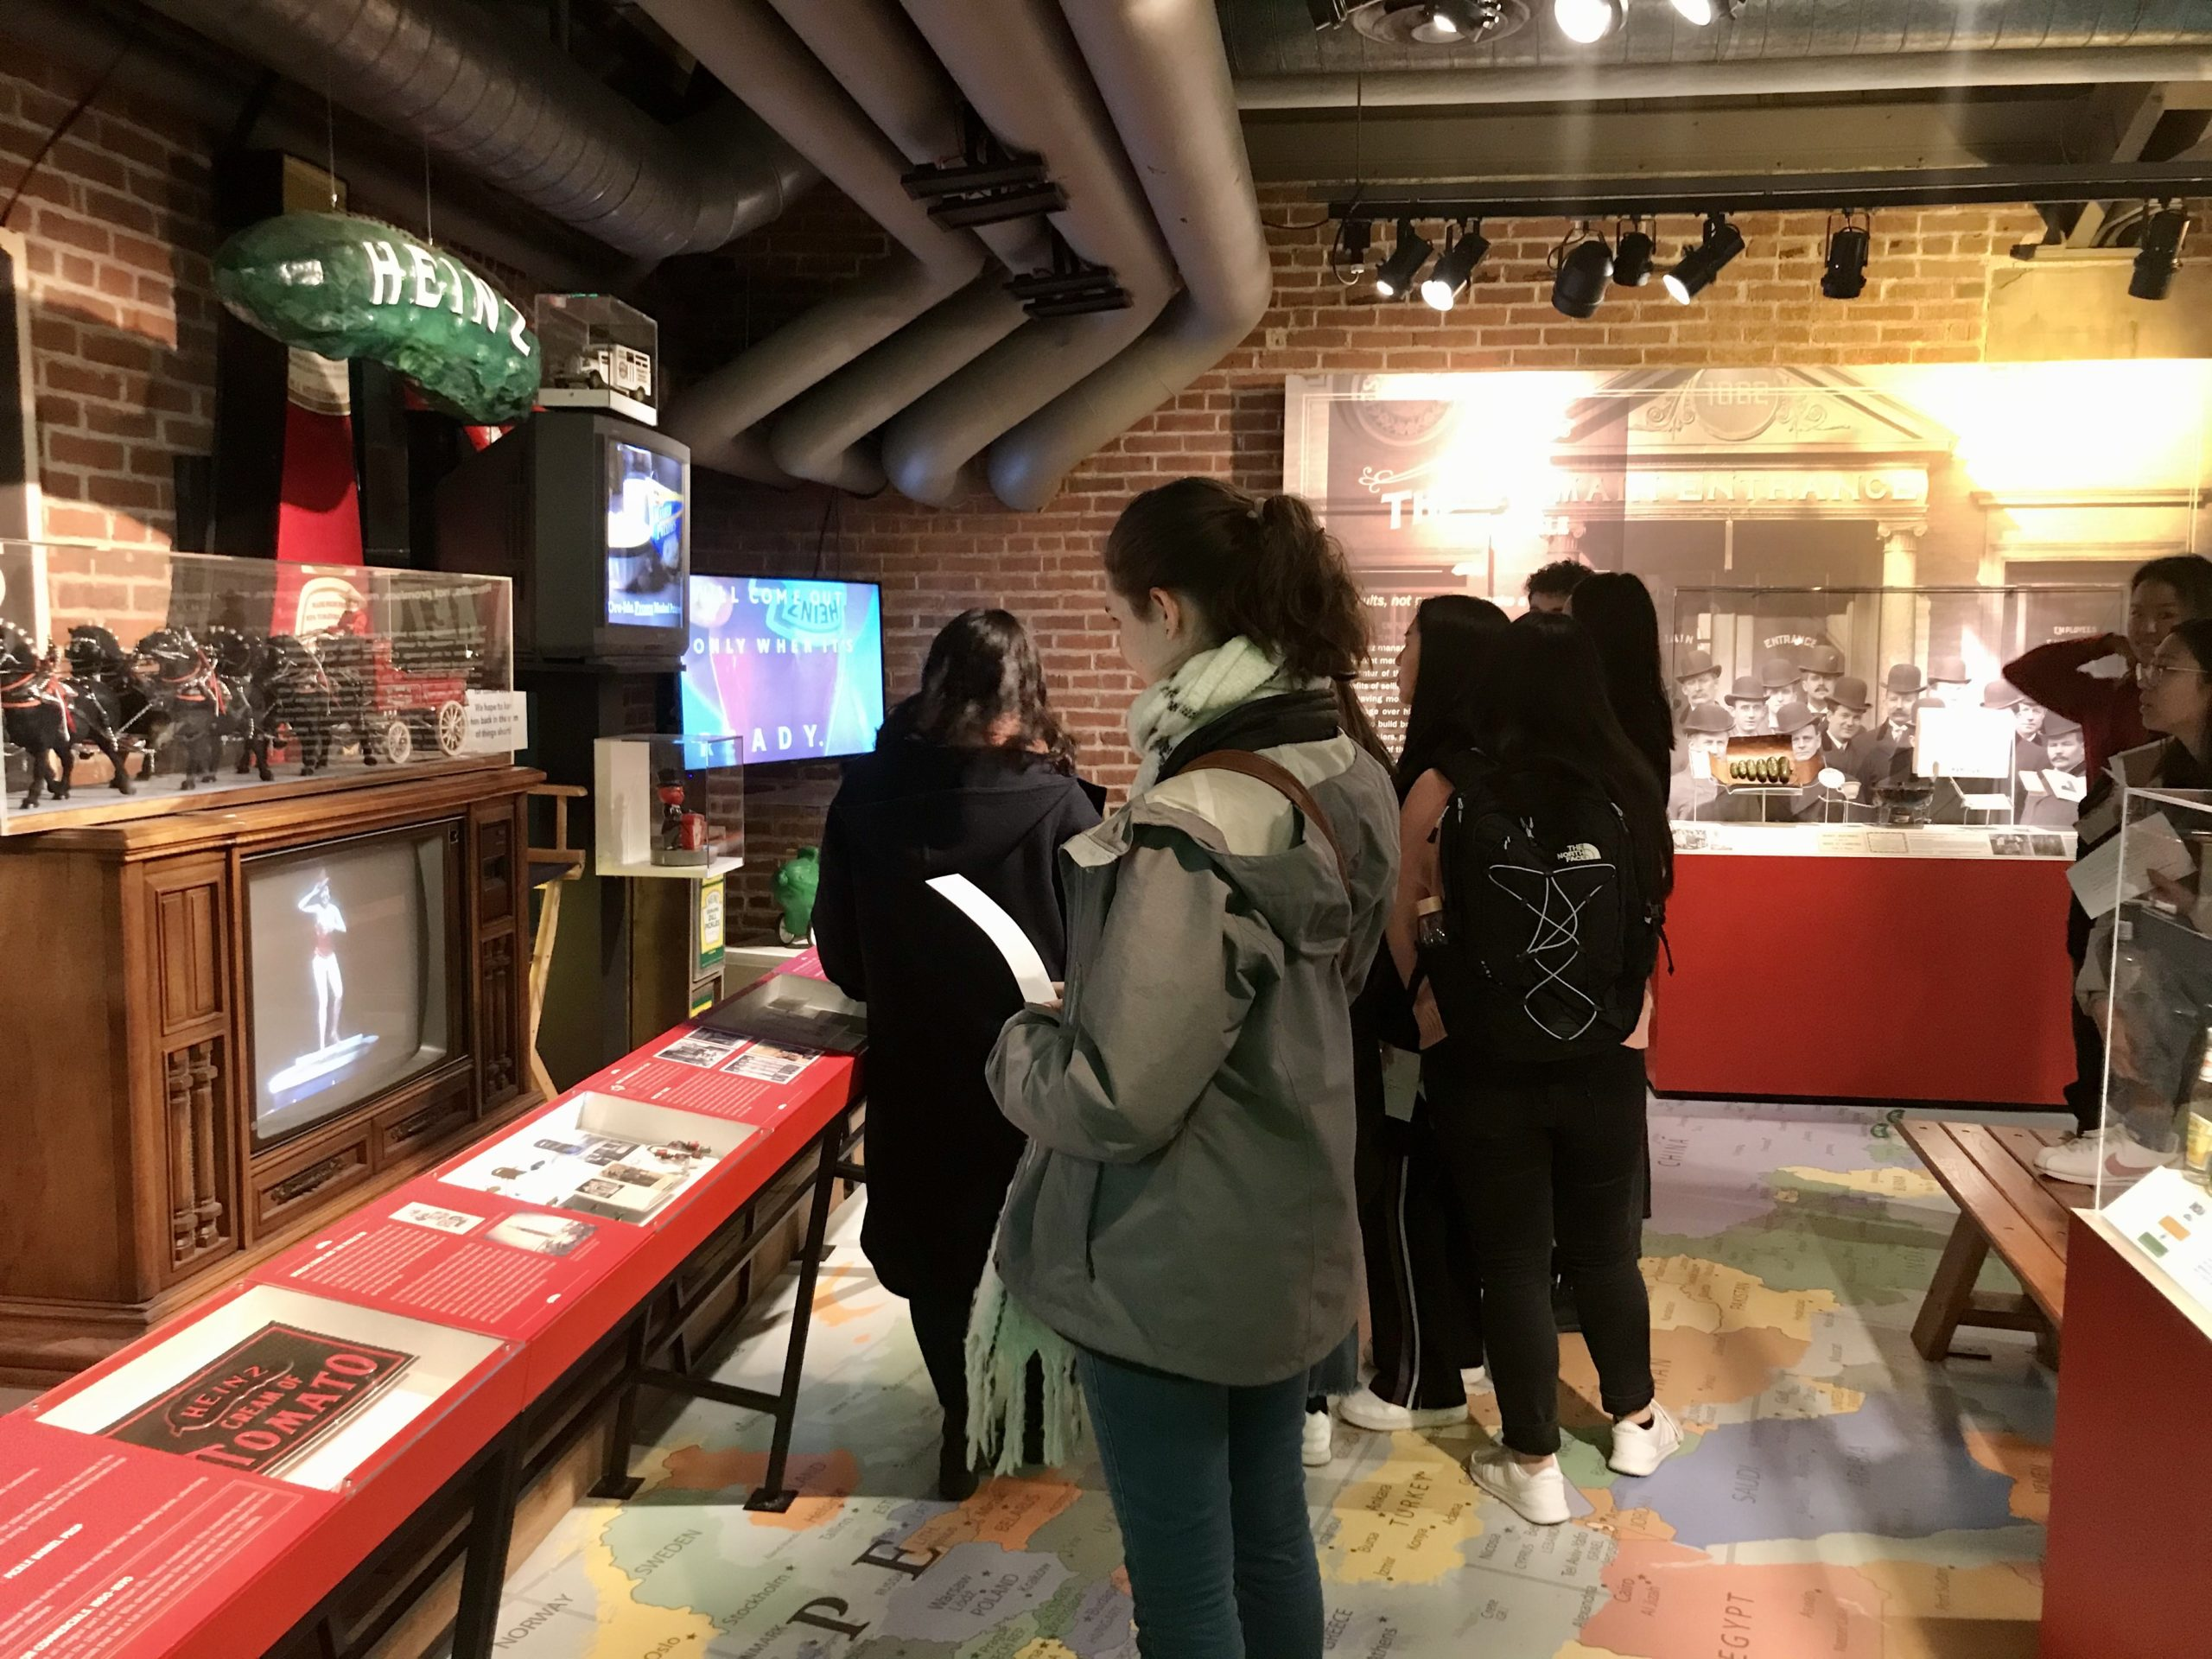 Class 3 / 01.29: Trip to the Heinz History Center